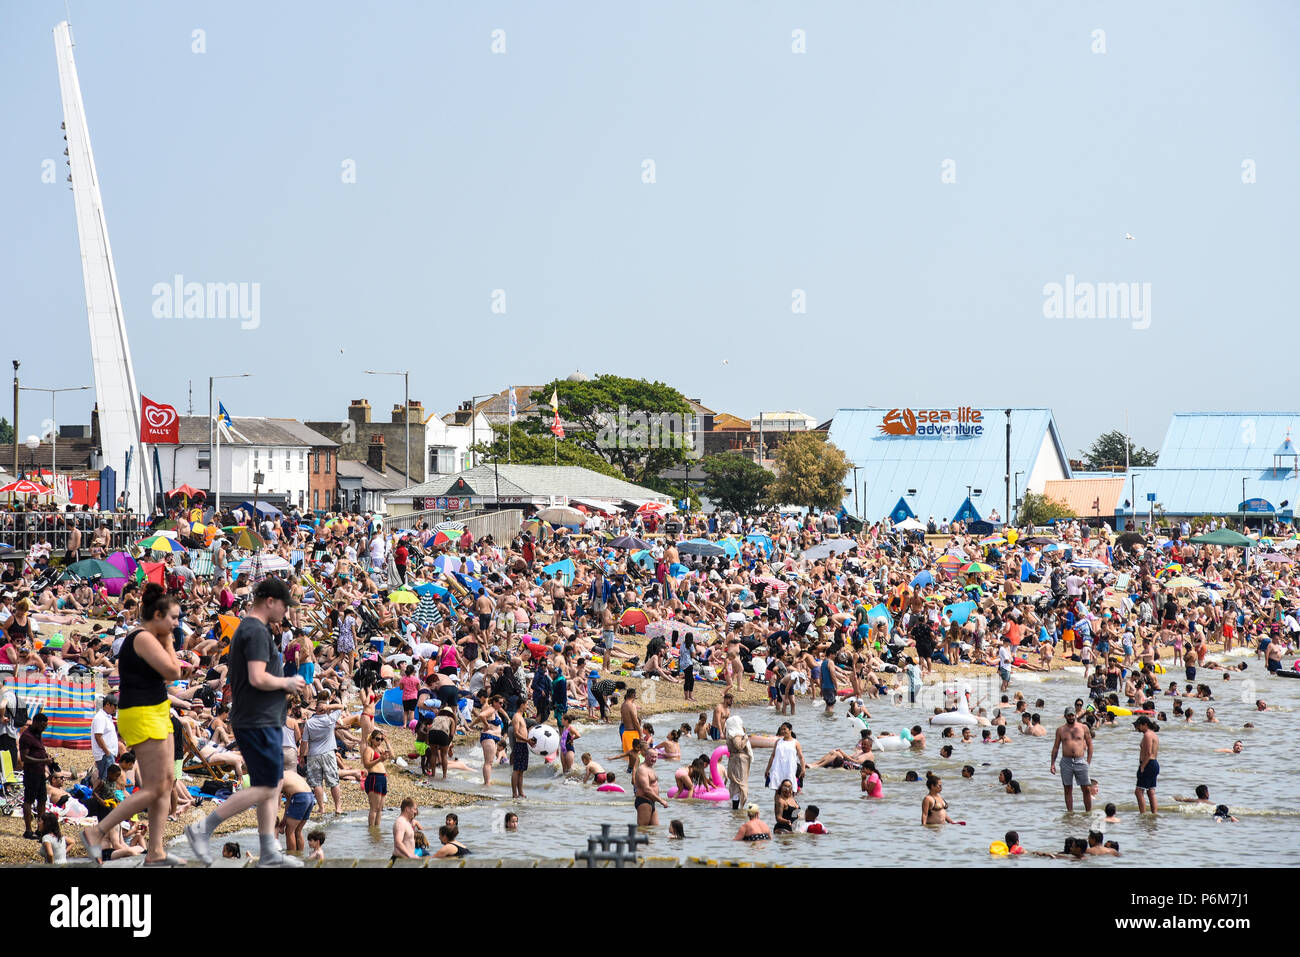 southend-on-sea-essex-uk-the-warm-spell-has-continued-in-southend-crowded-beach-P6M7J1.jpg